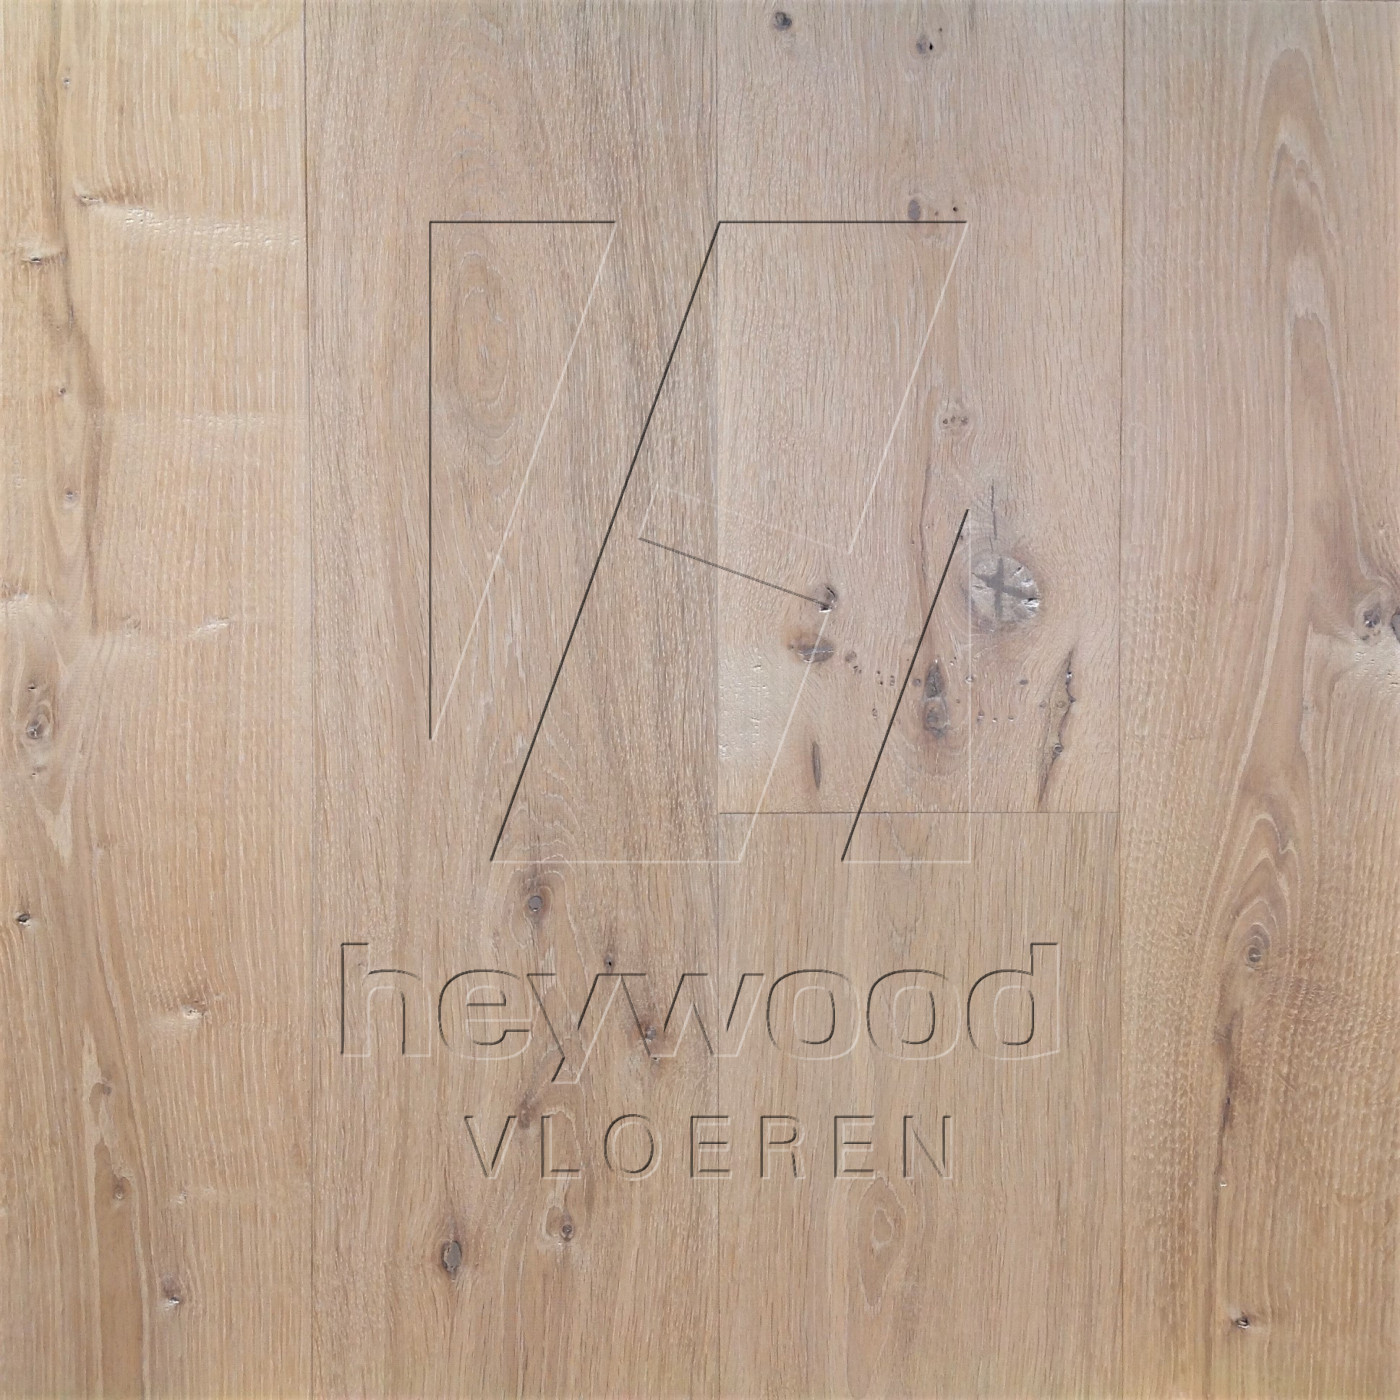 Plank St.Moritz in European Oak Character of Bespoke Wooden Floors